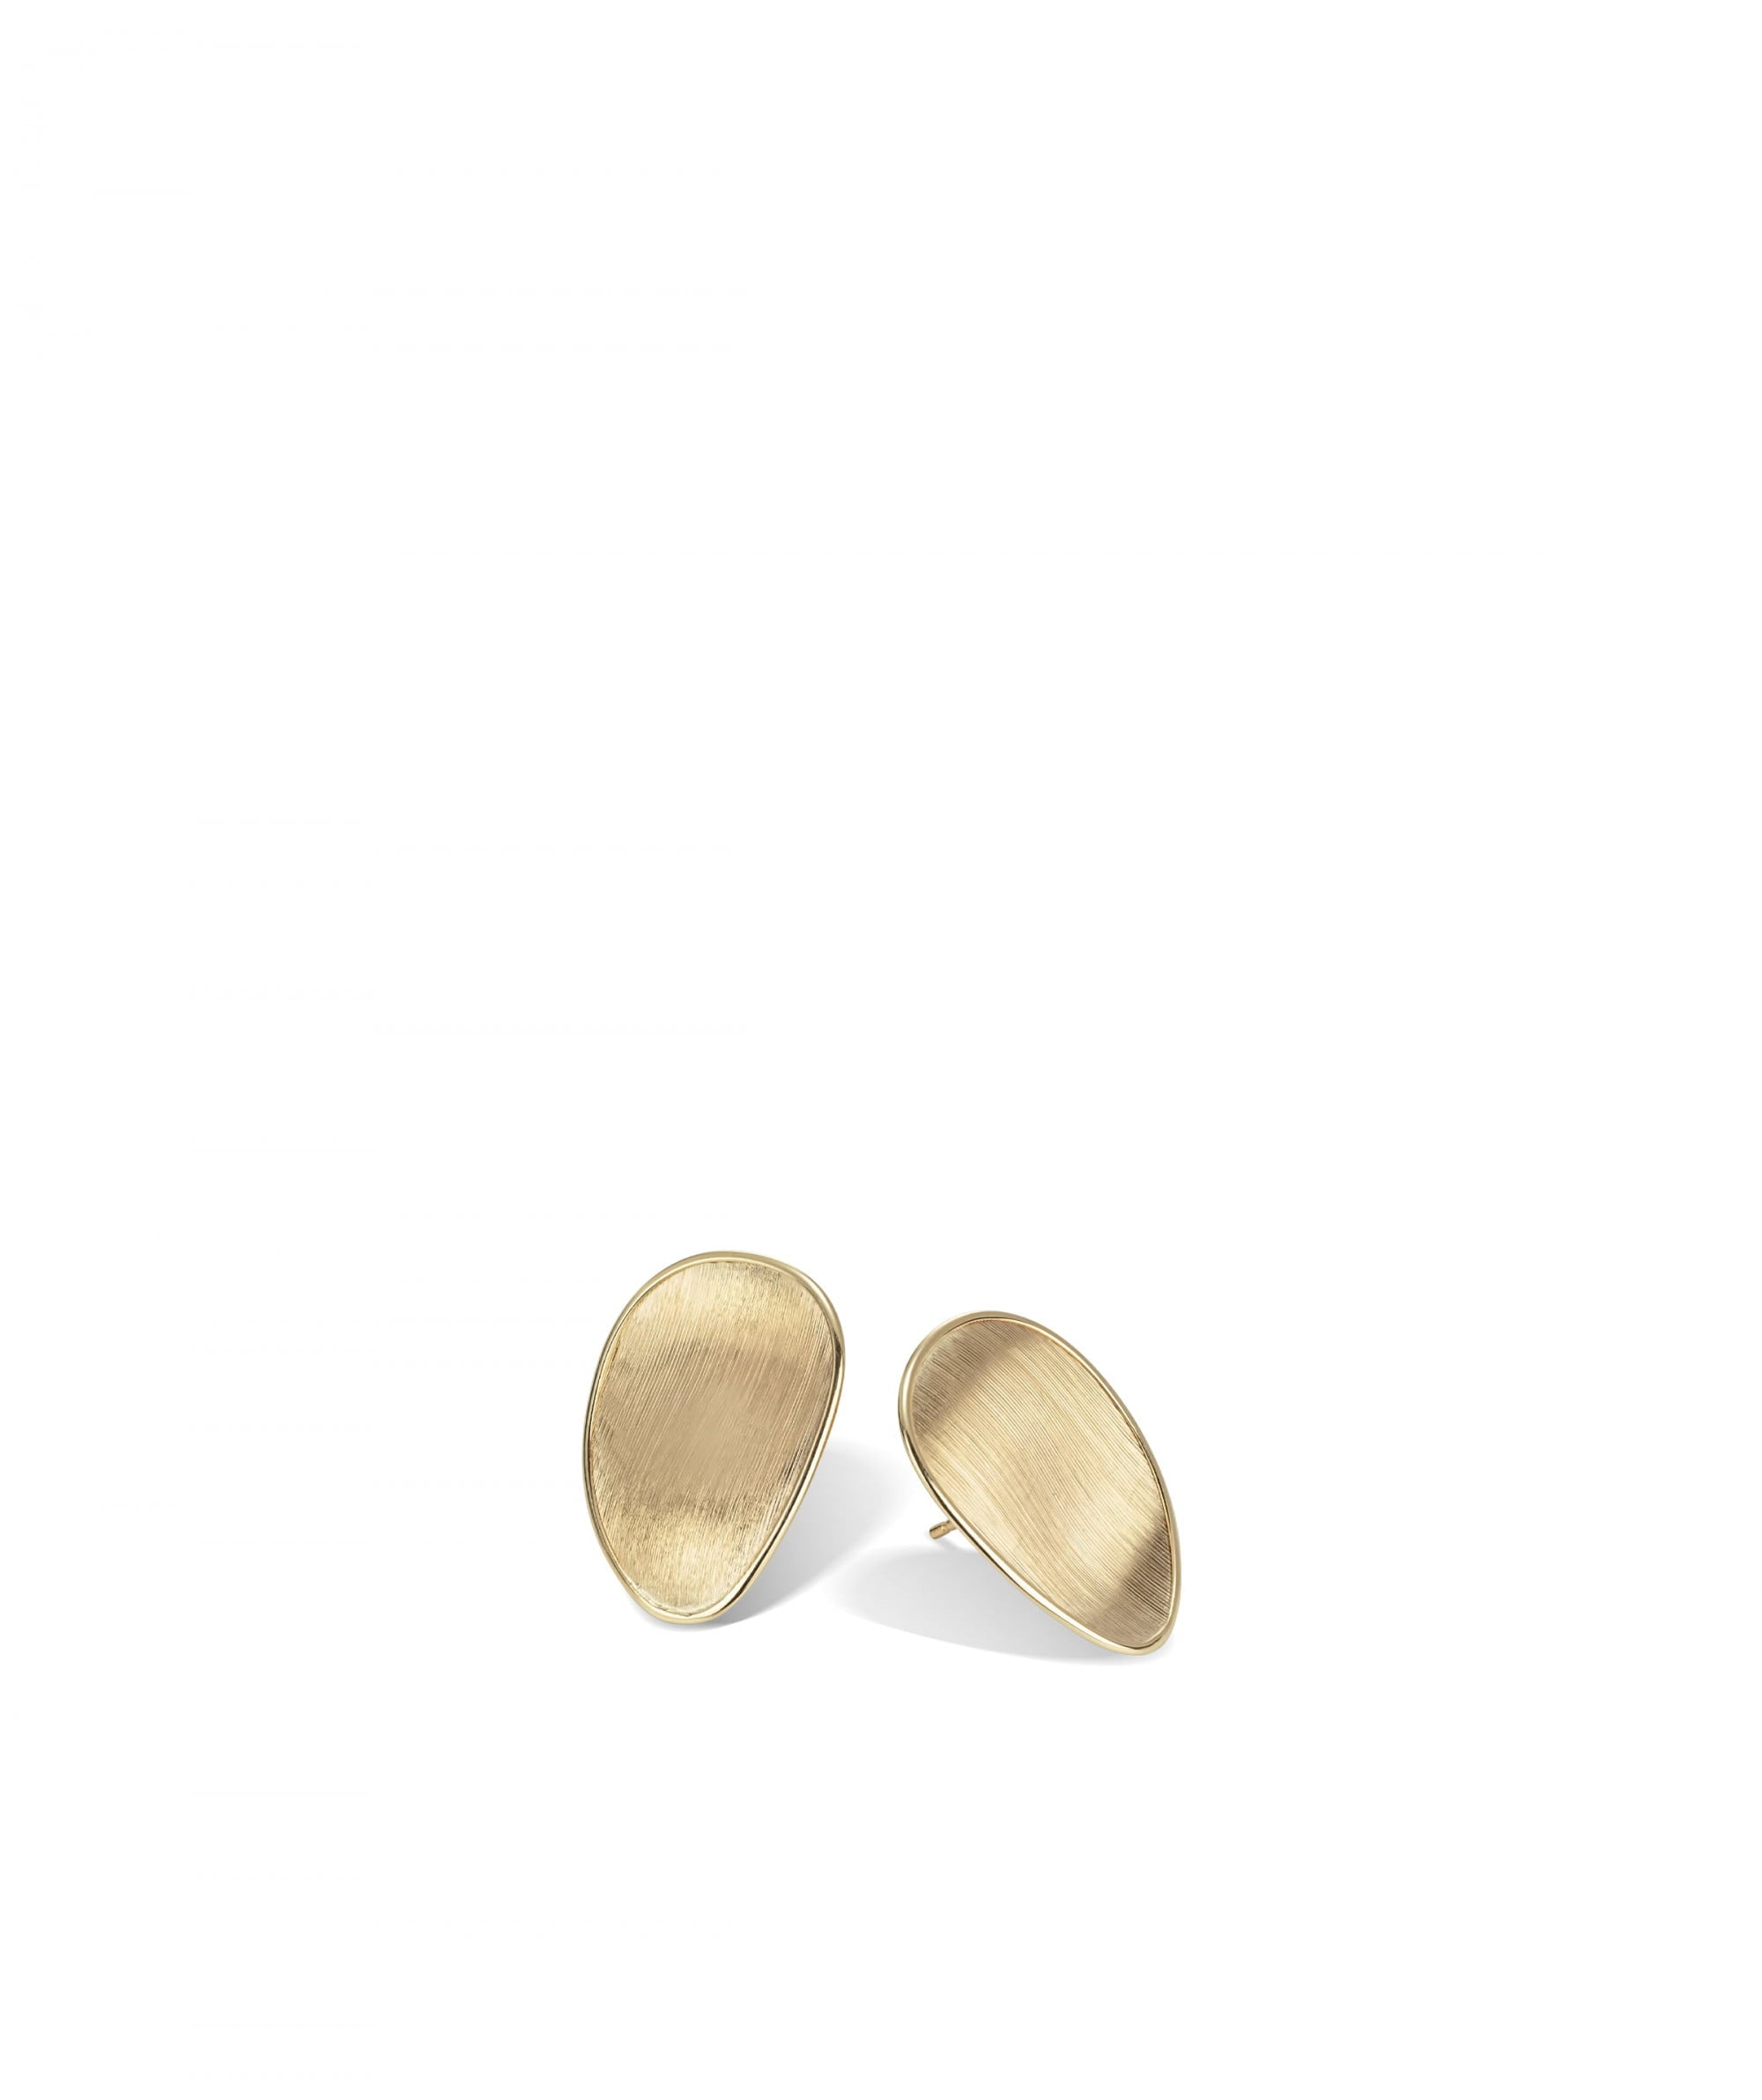 Lunaria Earrings in 18k Yellow Gold Stud Medium - Orsini Jewellers NZ